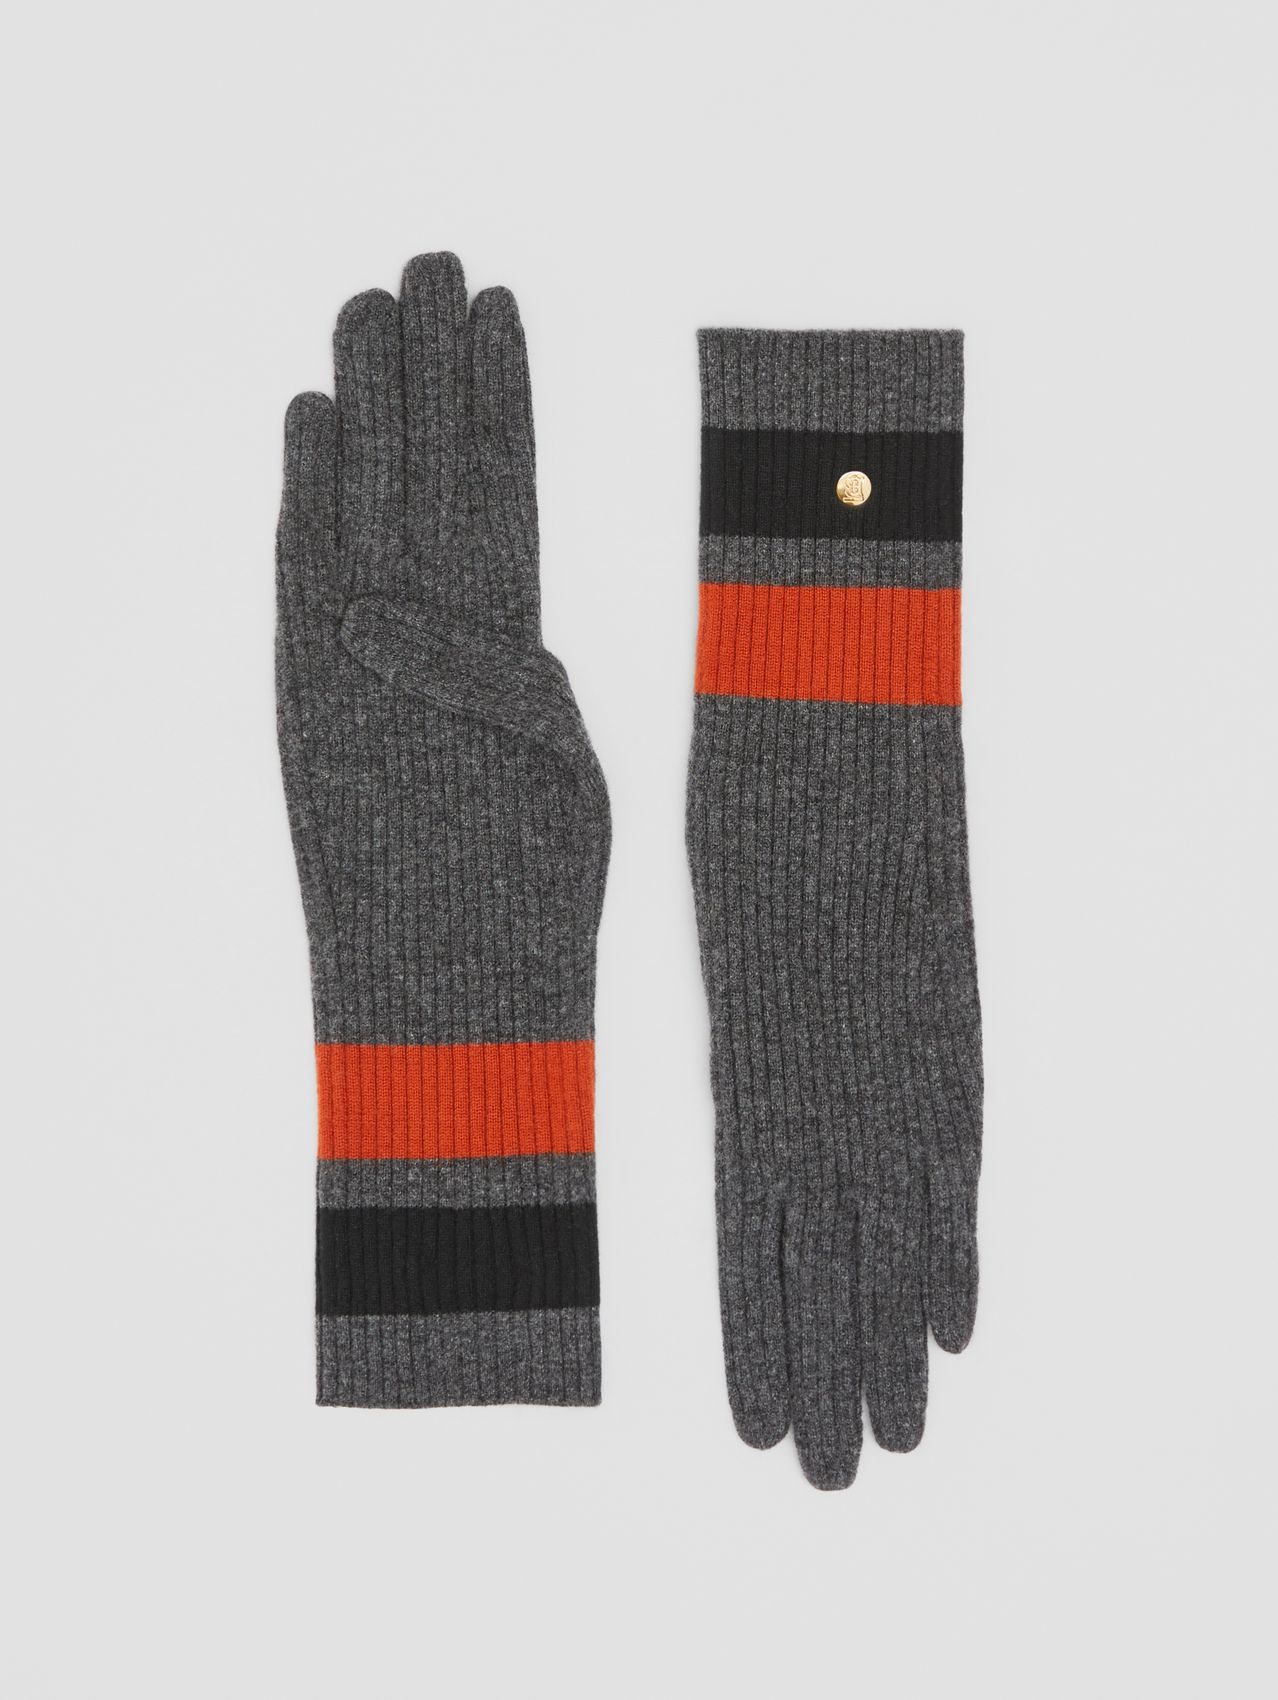 Monogram Motif Merino Wool Cashmere Gloves in Dark Grey